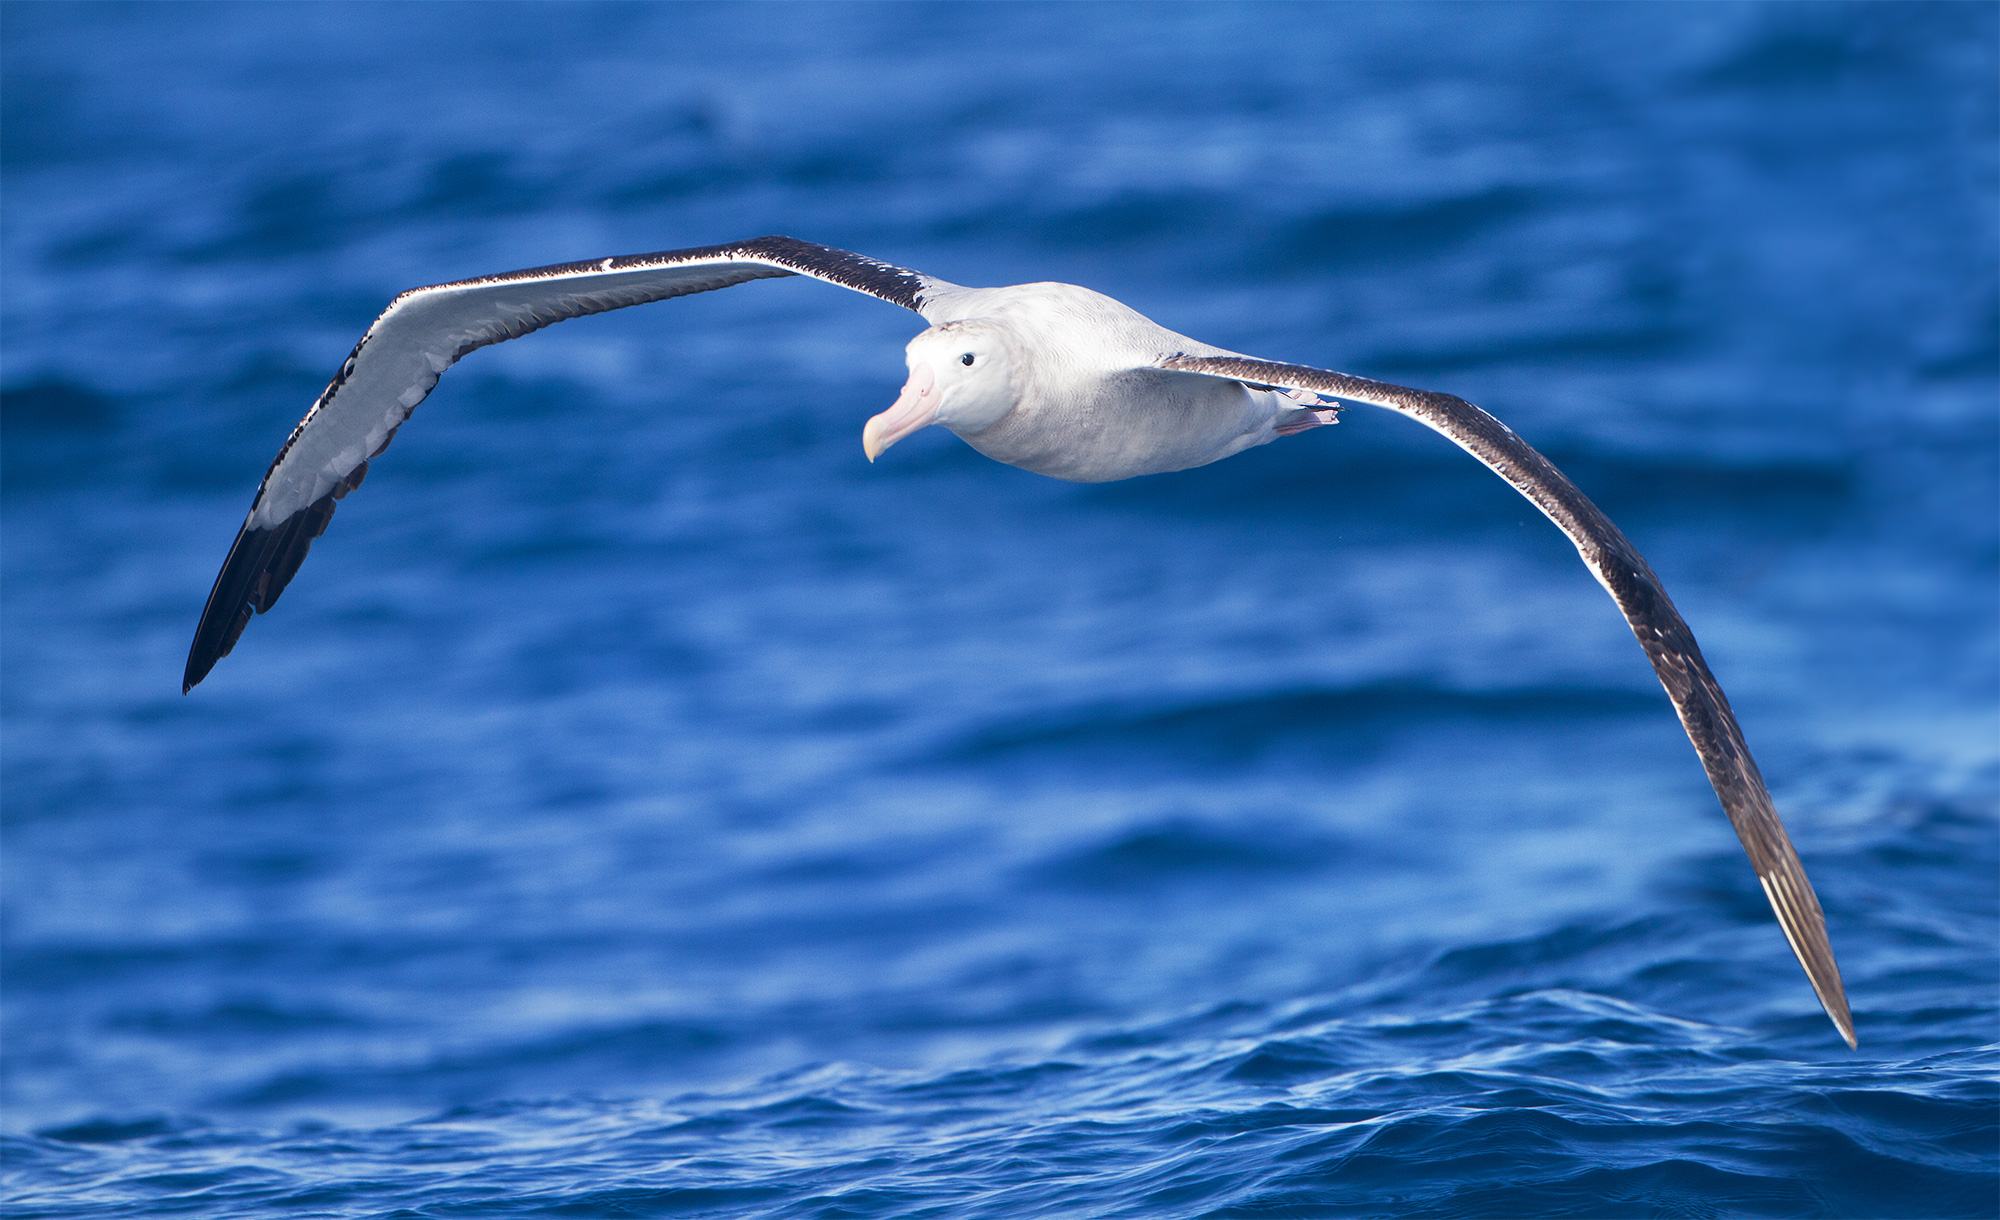 Photo of albatross in flight.